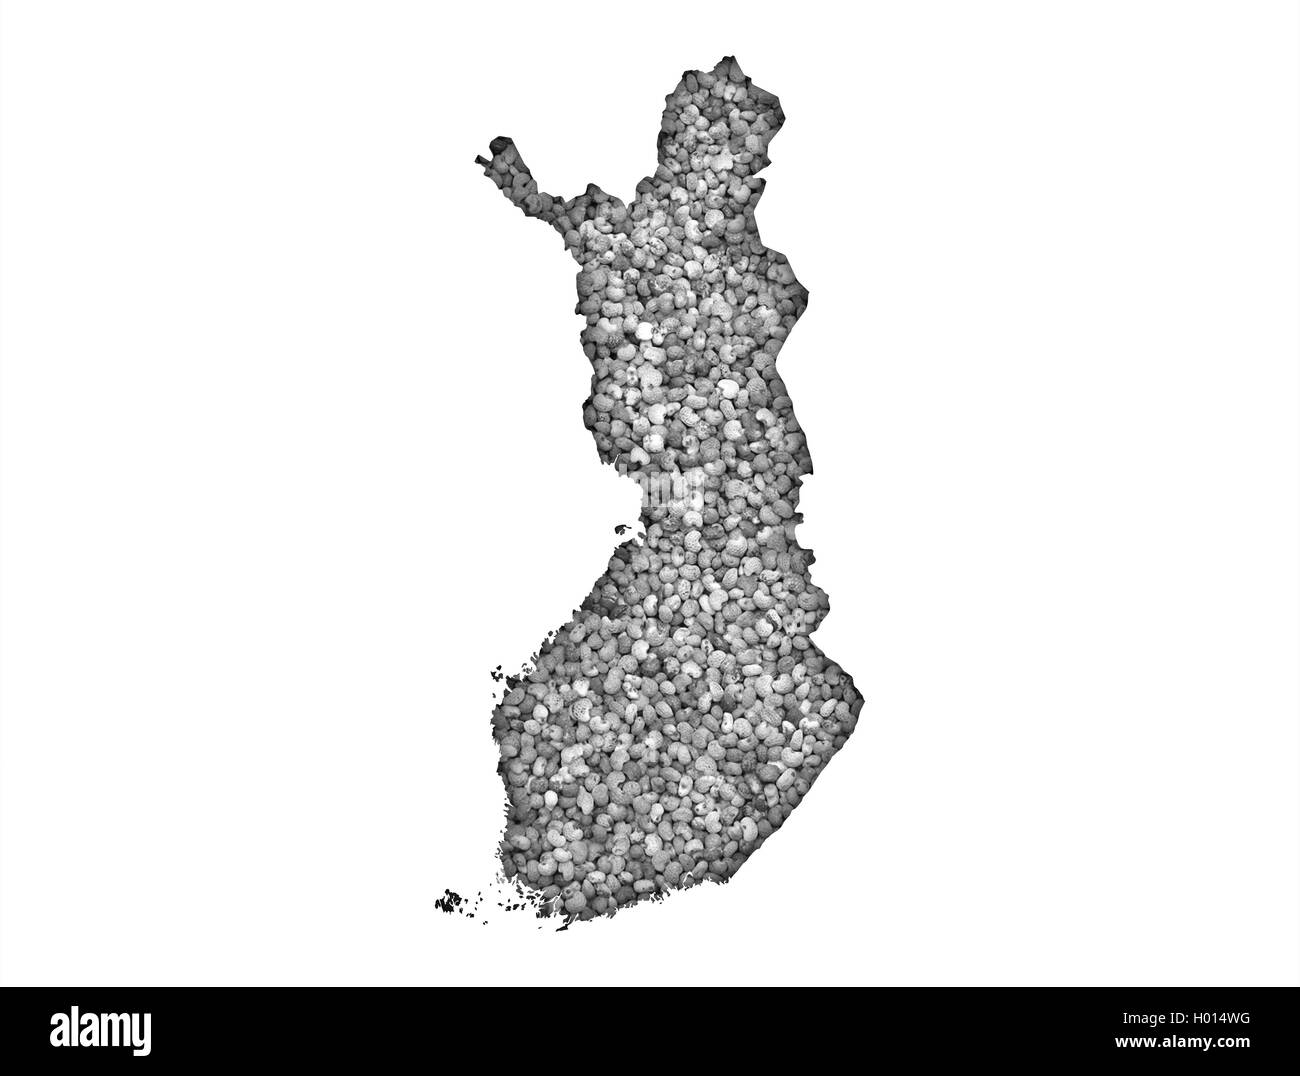 Outline Map Of Finland Stock Photos & Outline Map Of Finland ...